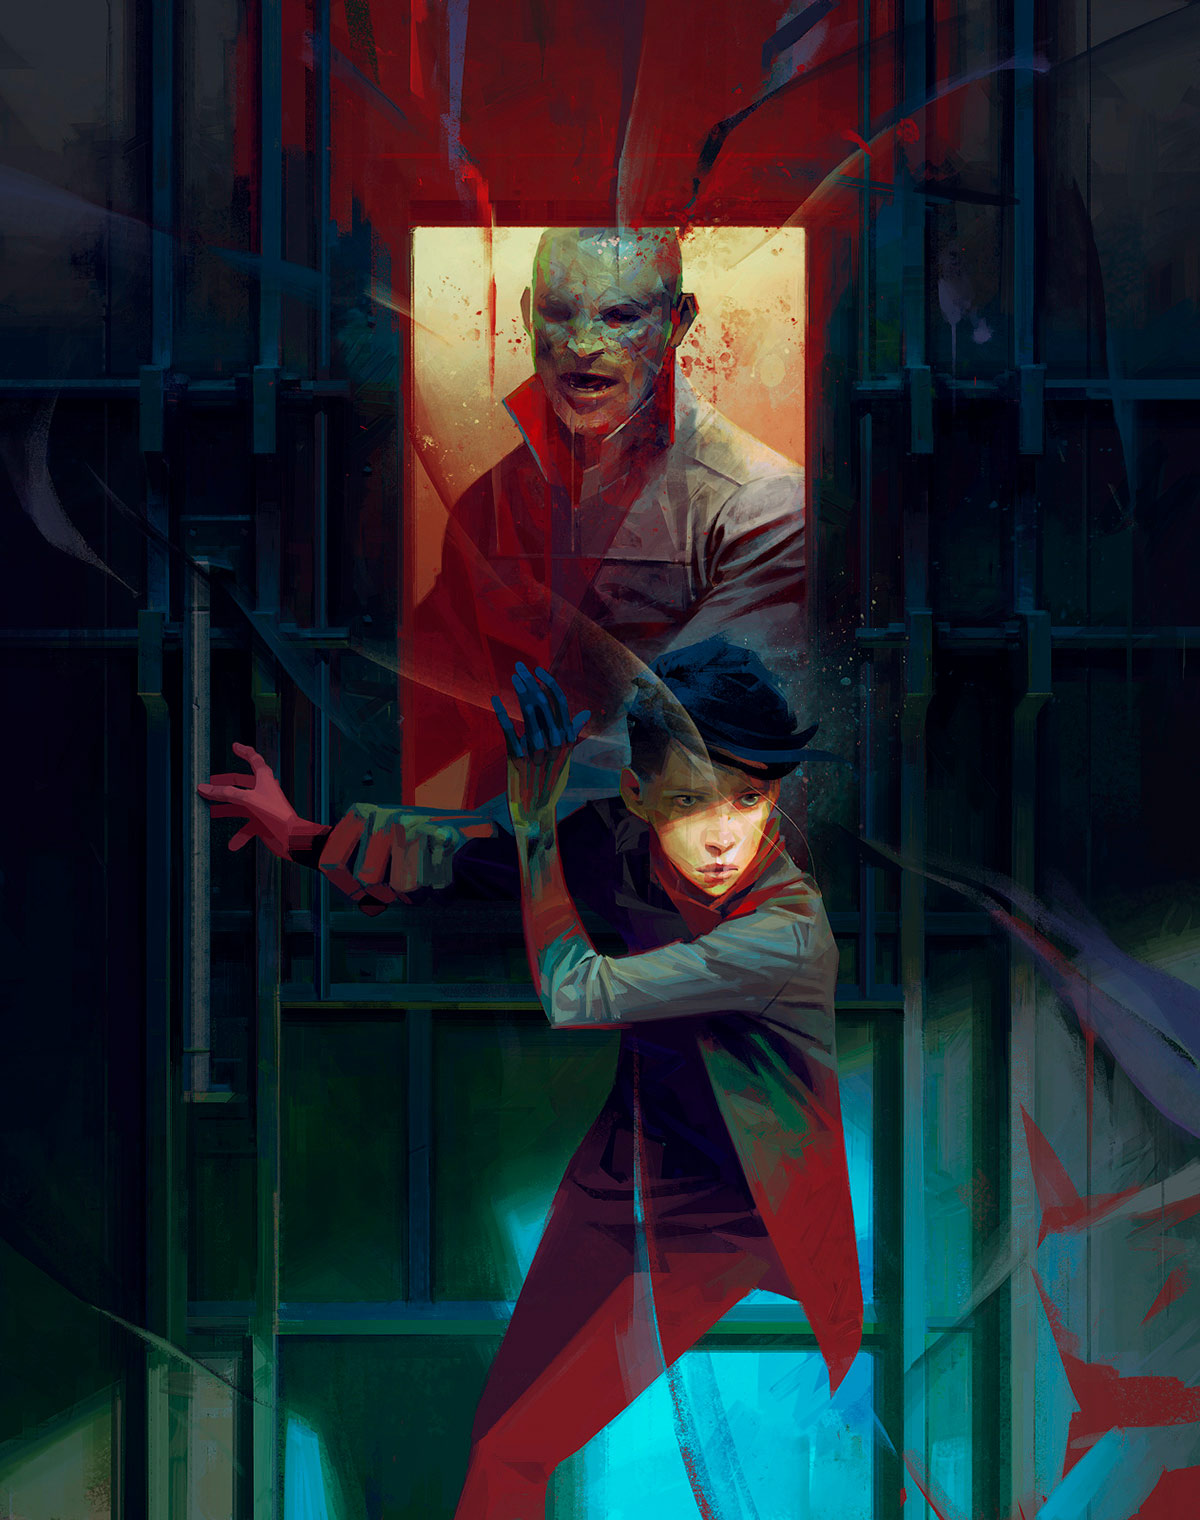 Digital Art & Amazing Illustrations by Sergey Kolesov 3